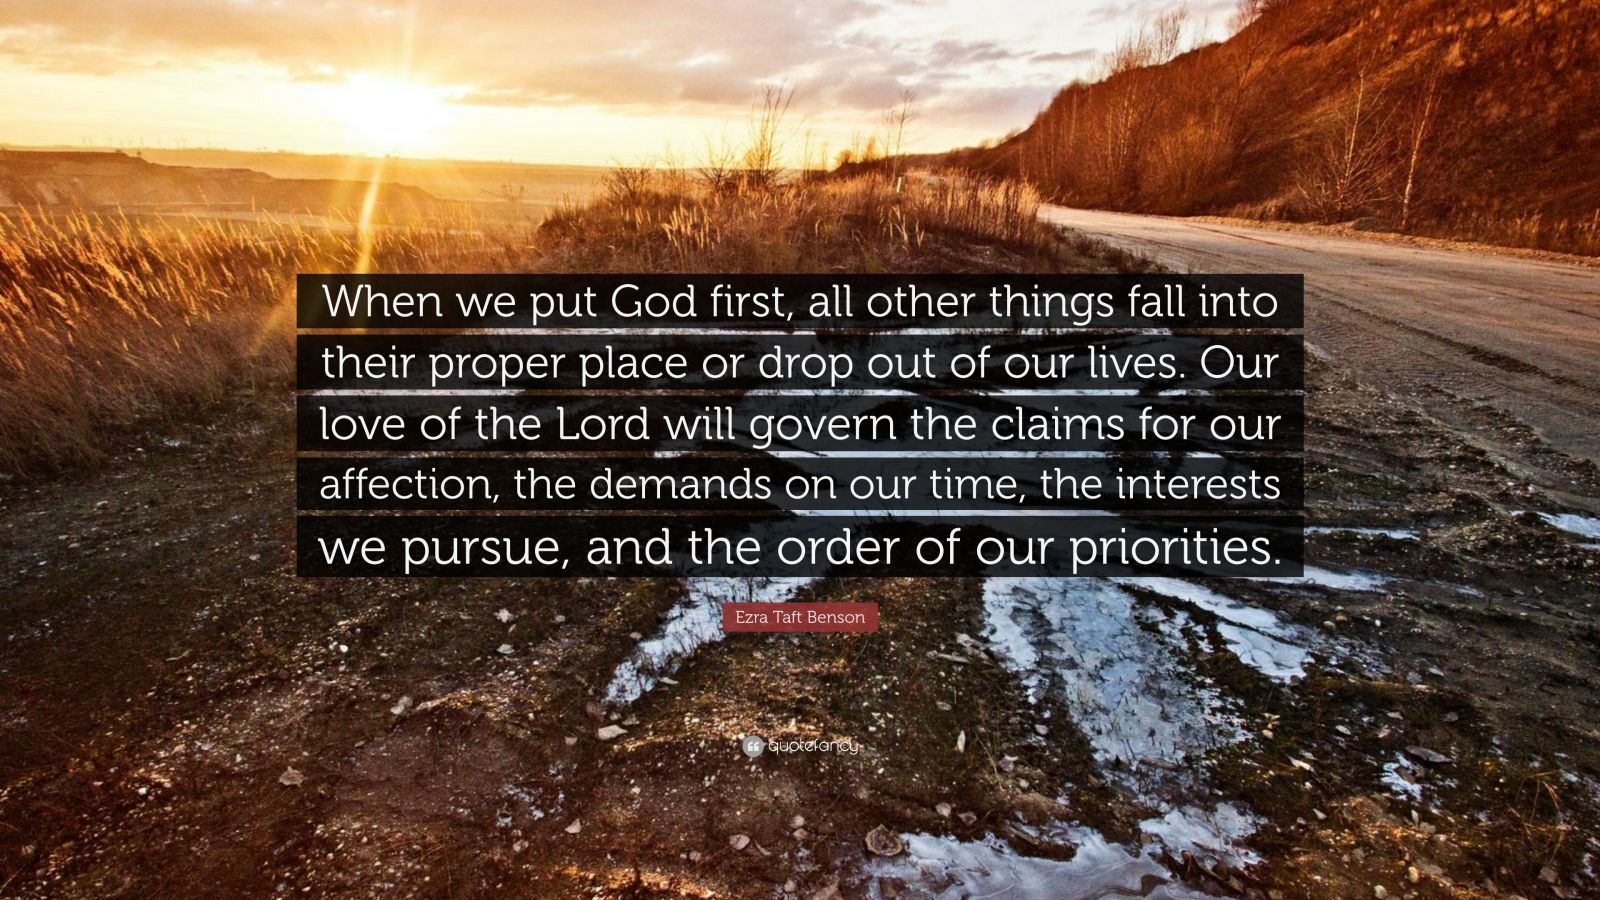 """Ezra Taft Benson Quote: """"When we put God first, all other things fall into their proper place or drop out of our lives. Our love of the Lord will govern the claims for our affection, the demands on our time, the interests we pursue, and the order of our priorities."""""""